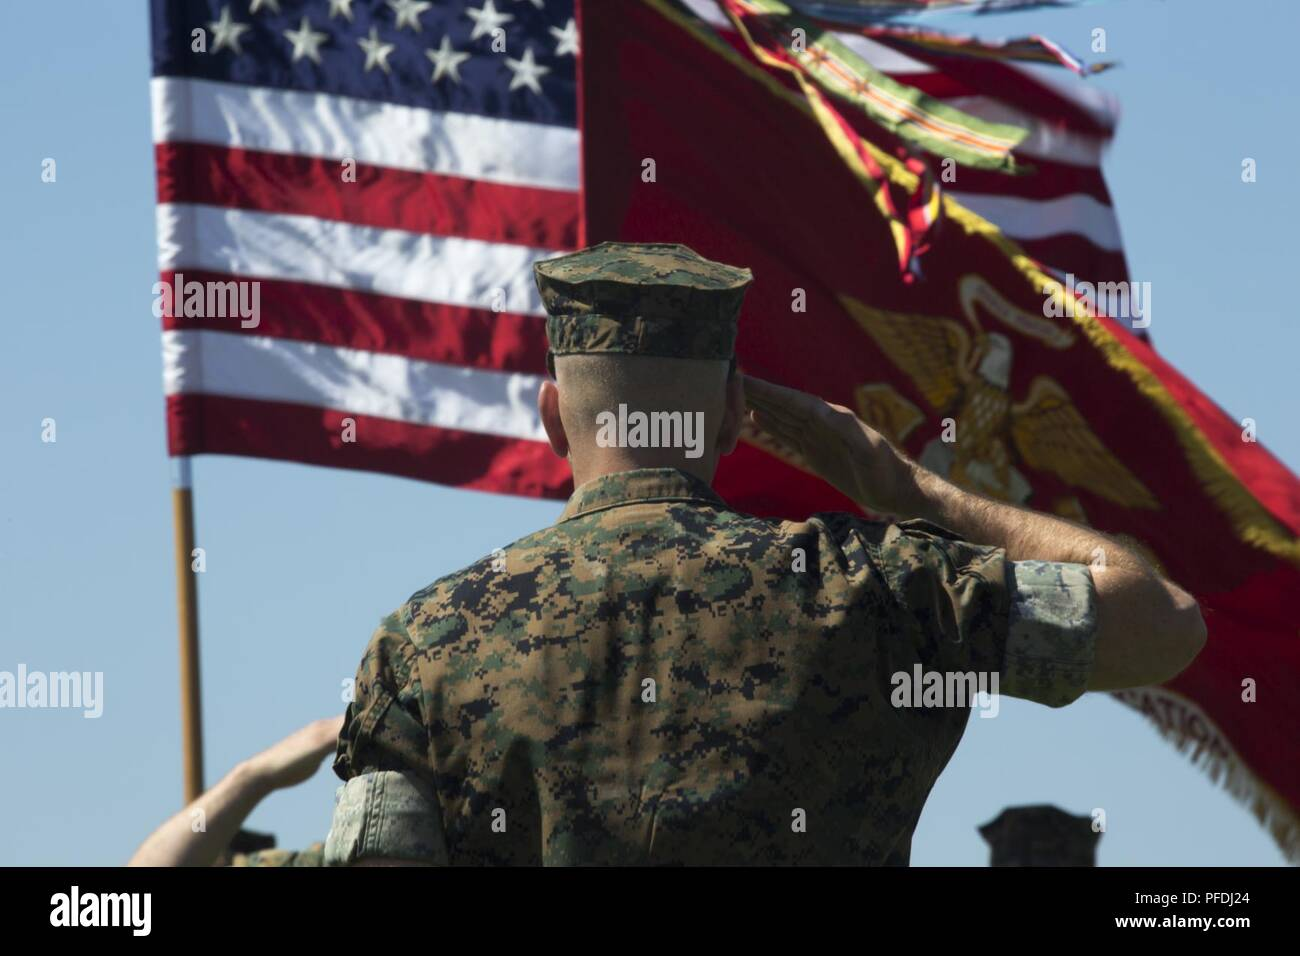 """Col. Scott A. Gondek, commanding officer of Marine Air Control Group 48, salutes the American flag as """"Star Spangled Banner"""" plays during Marine Wing Communications Squadron (MWCS) 48's change of command ceremony at Marine Corps Air Station Miramar, Calif., June 13. Lt. Col. Brian C. Pate assumed command of MWCS-48 from Lt. Col. Michael E. Sheridan who received a Meritorious Service Medal for his time as MWCS-48's commanding officer. Stock Photo"""